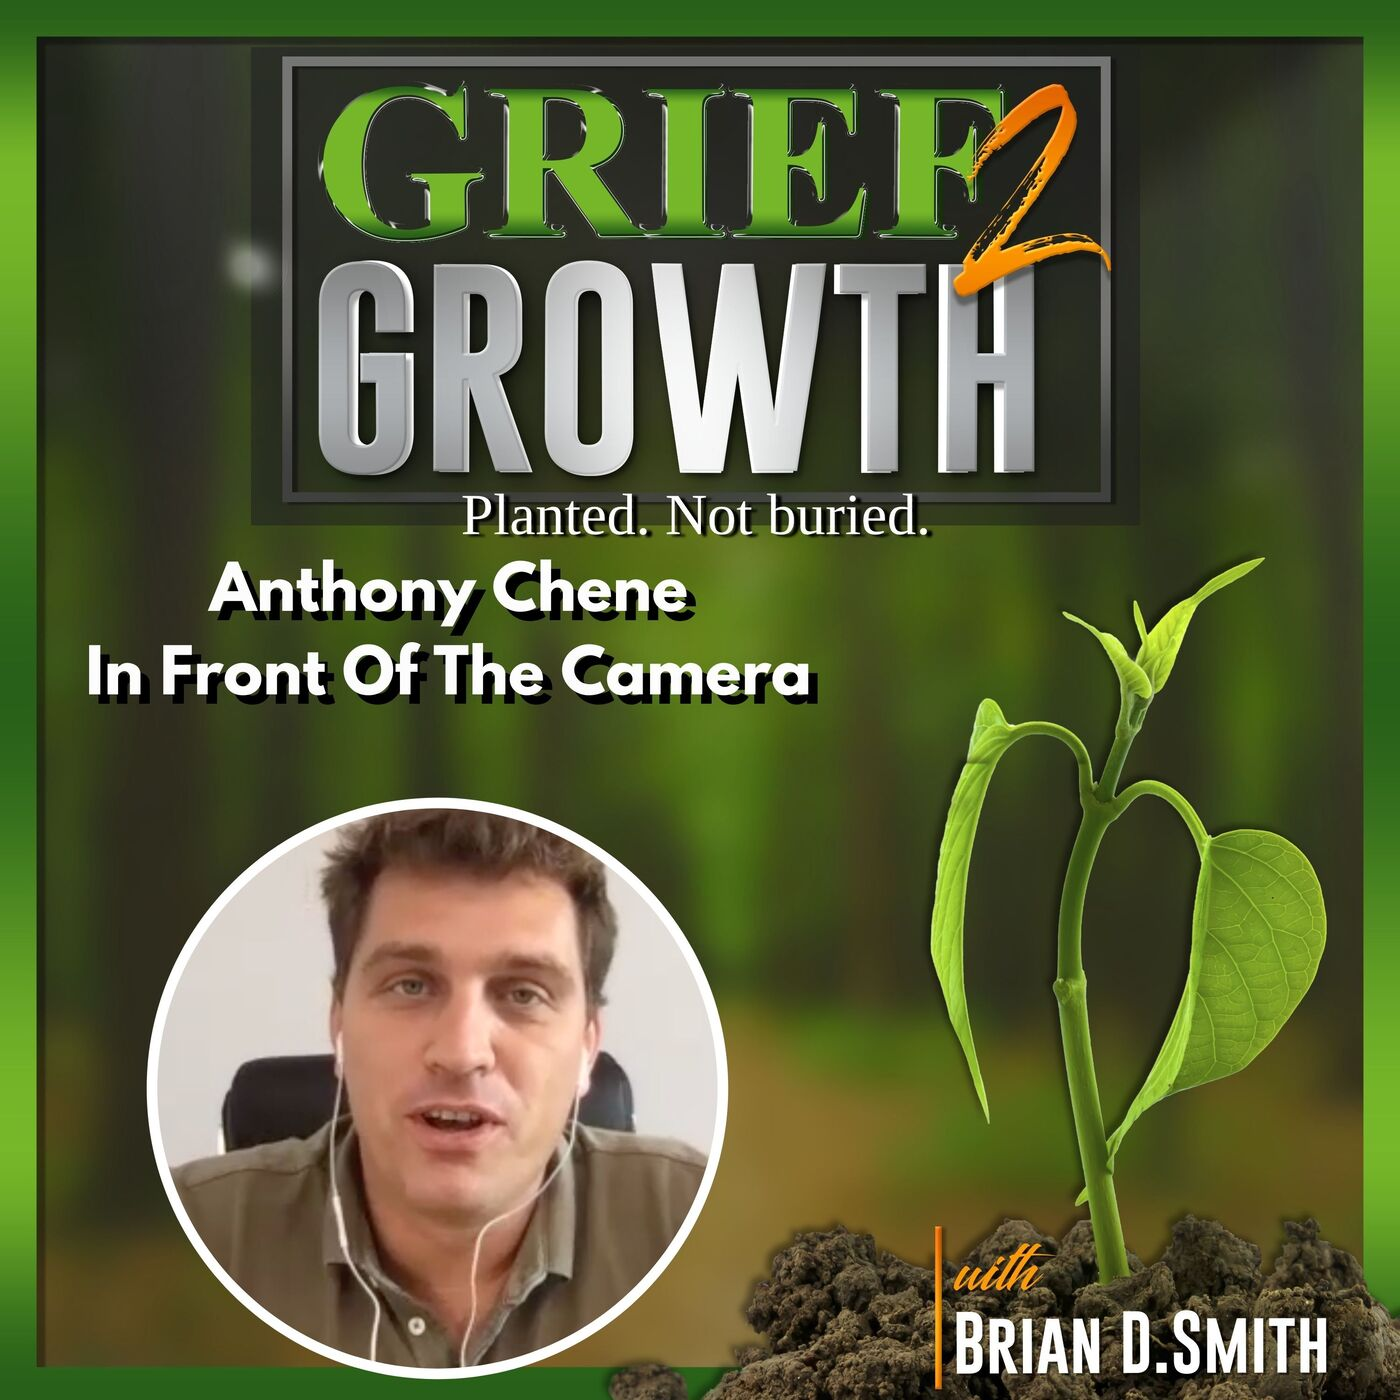 Anthony Chene- In Front Of The Camera